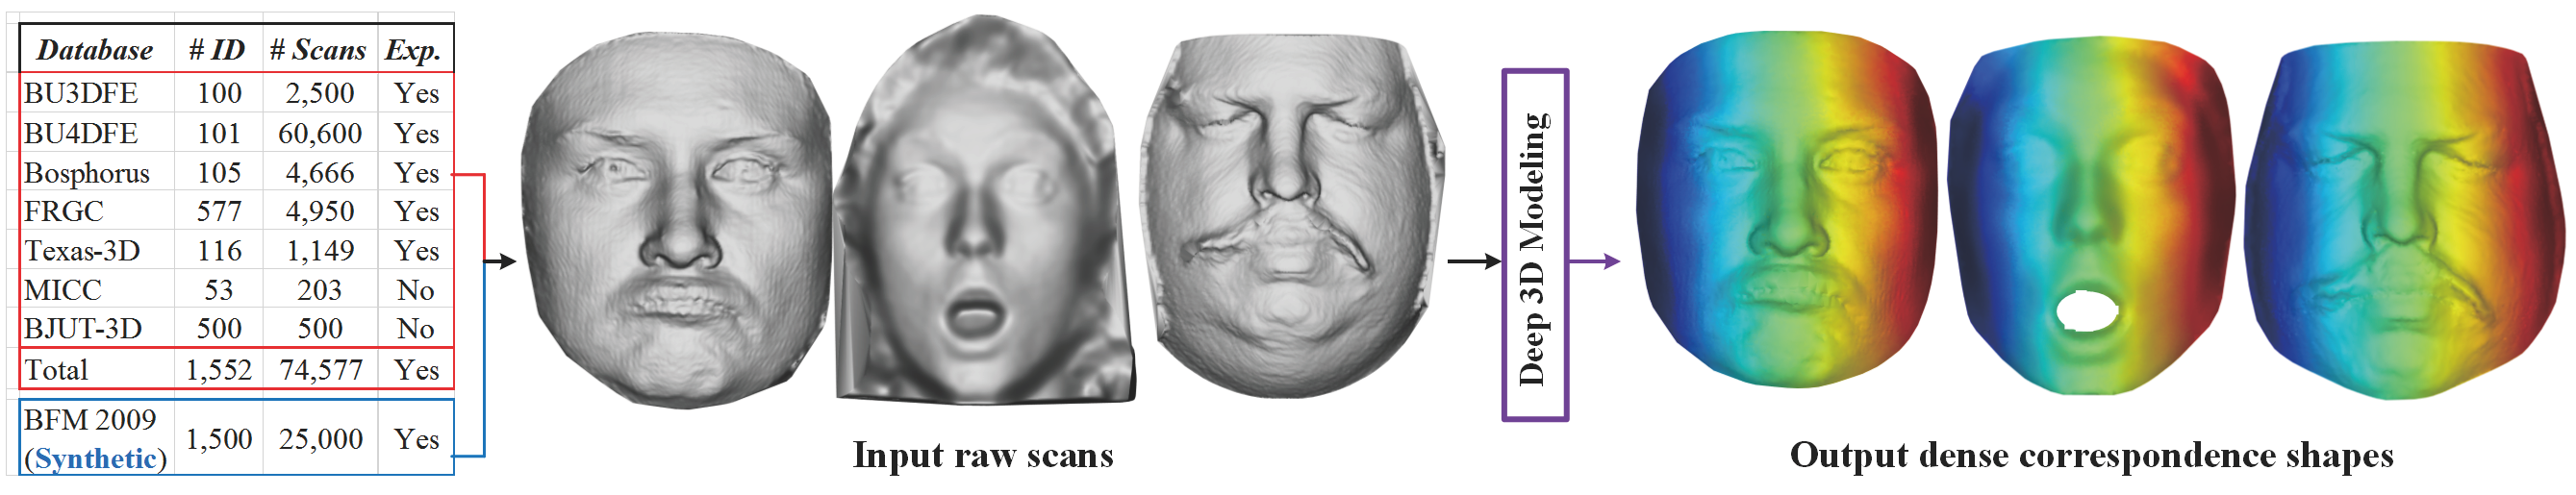 Papers With Code : 3D Face Modeling From Diverse Raw Scan Data